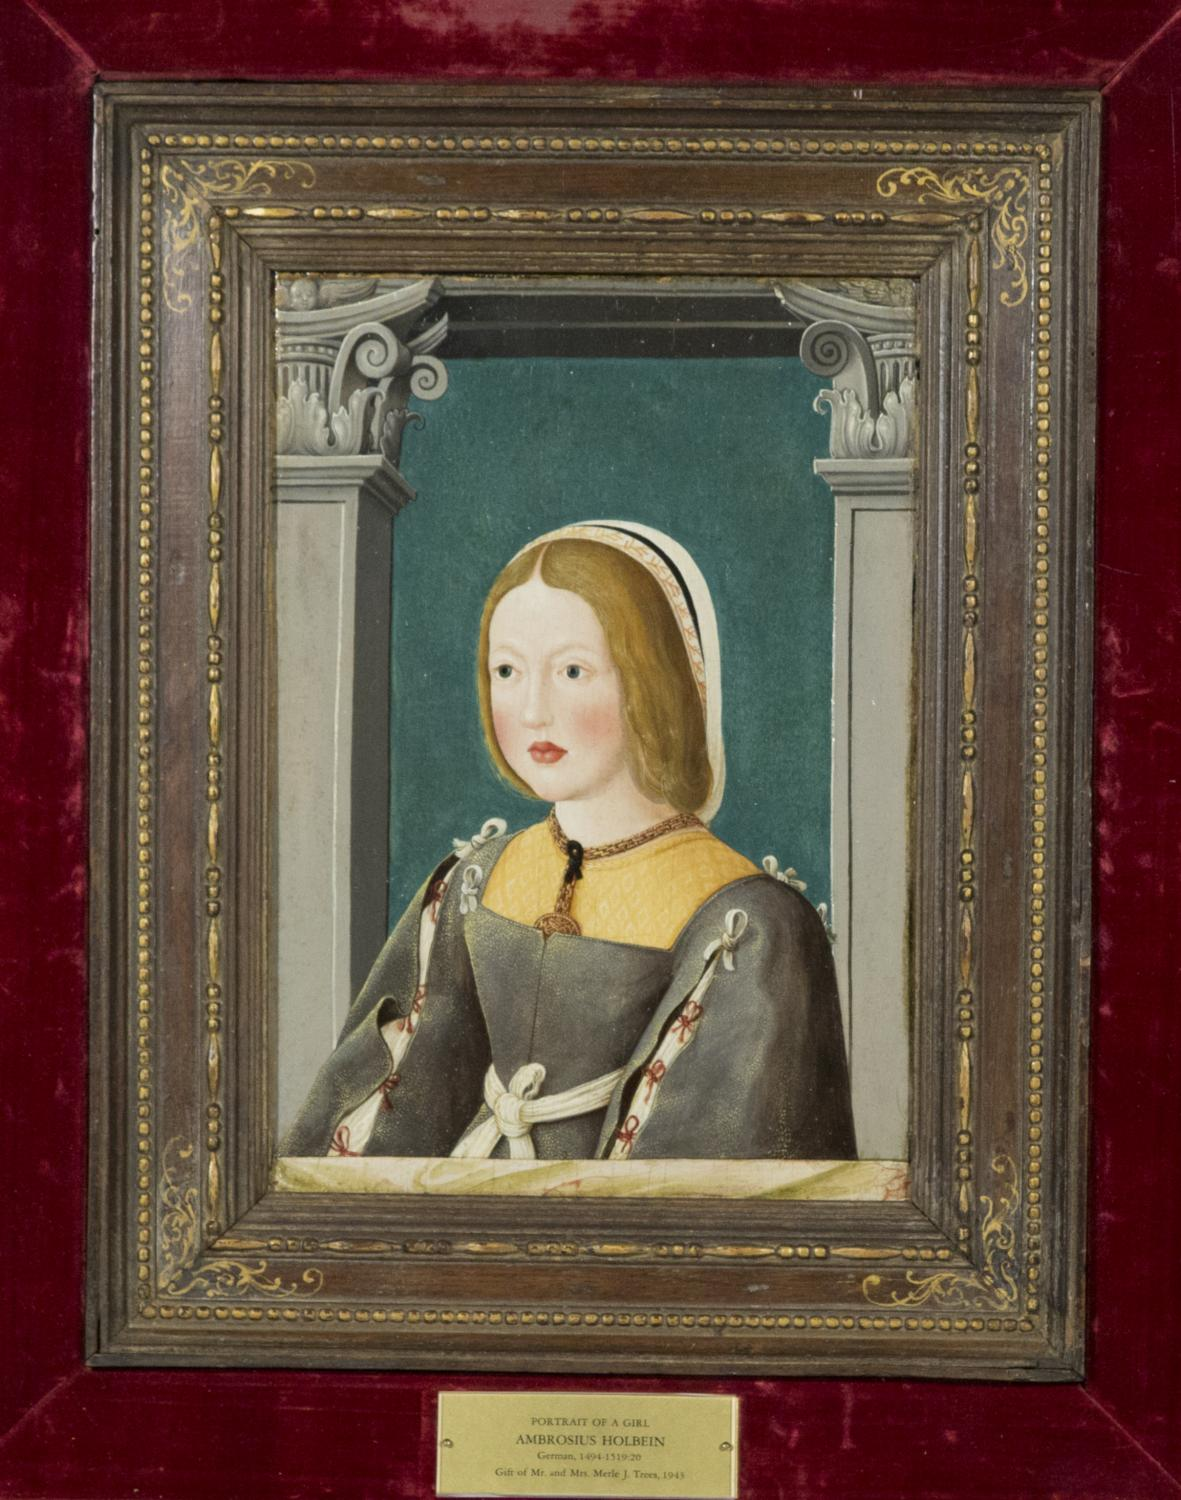 Ambrosius Holbein (Augsburg, Germany, ca. 1494–ca. 1520), Portrait of a Girl, ca. 1518. Oil or tempera on fir panel. Gift of Merle J. and Emily N. Trees 1943-1-2